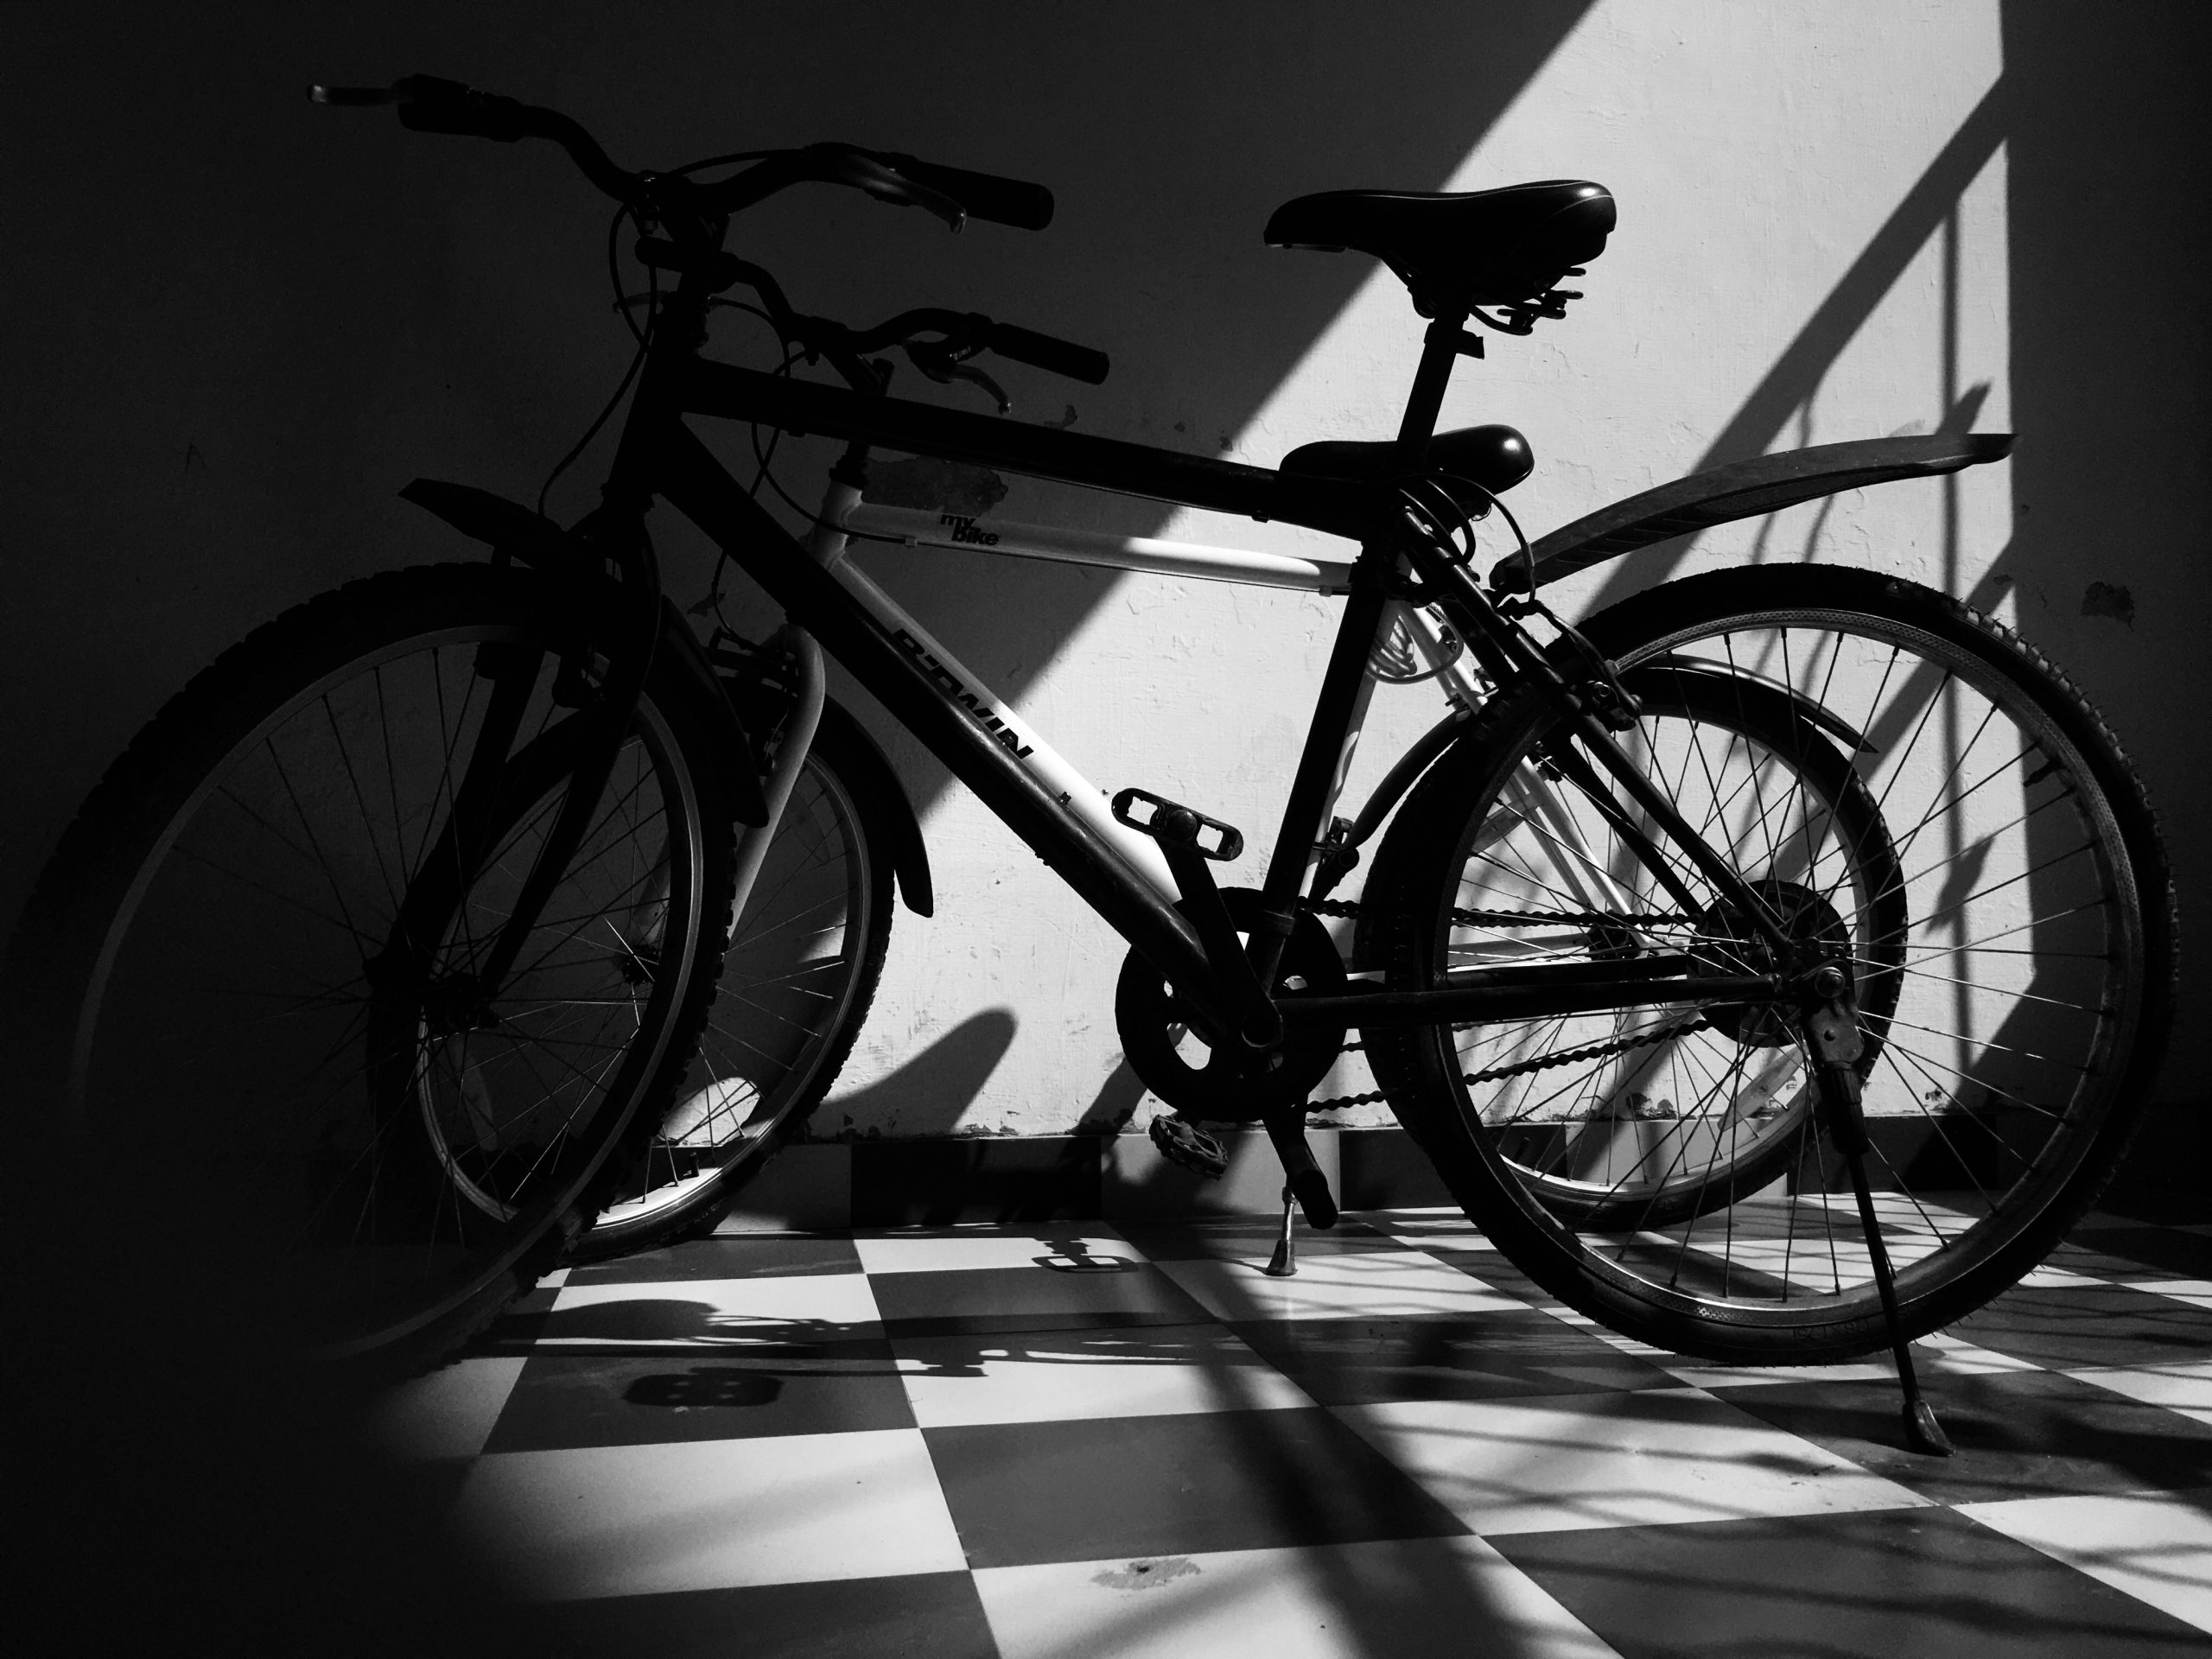 Two bicycles in shadow